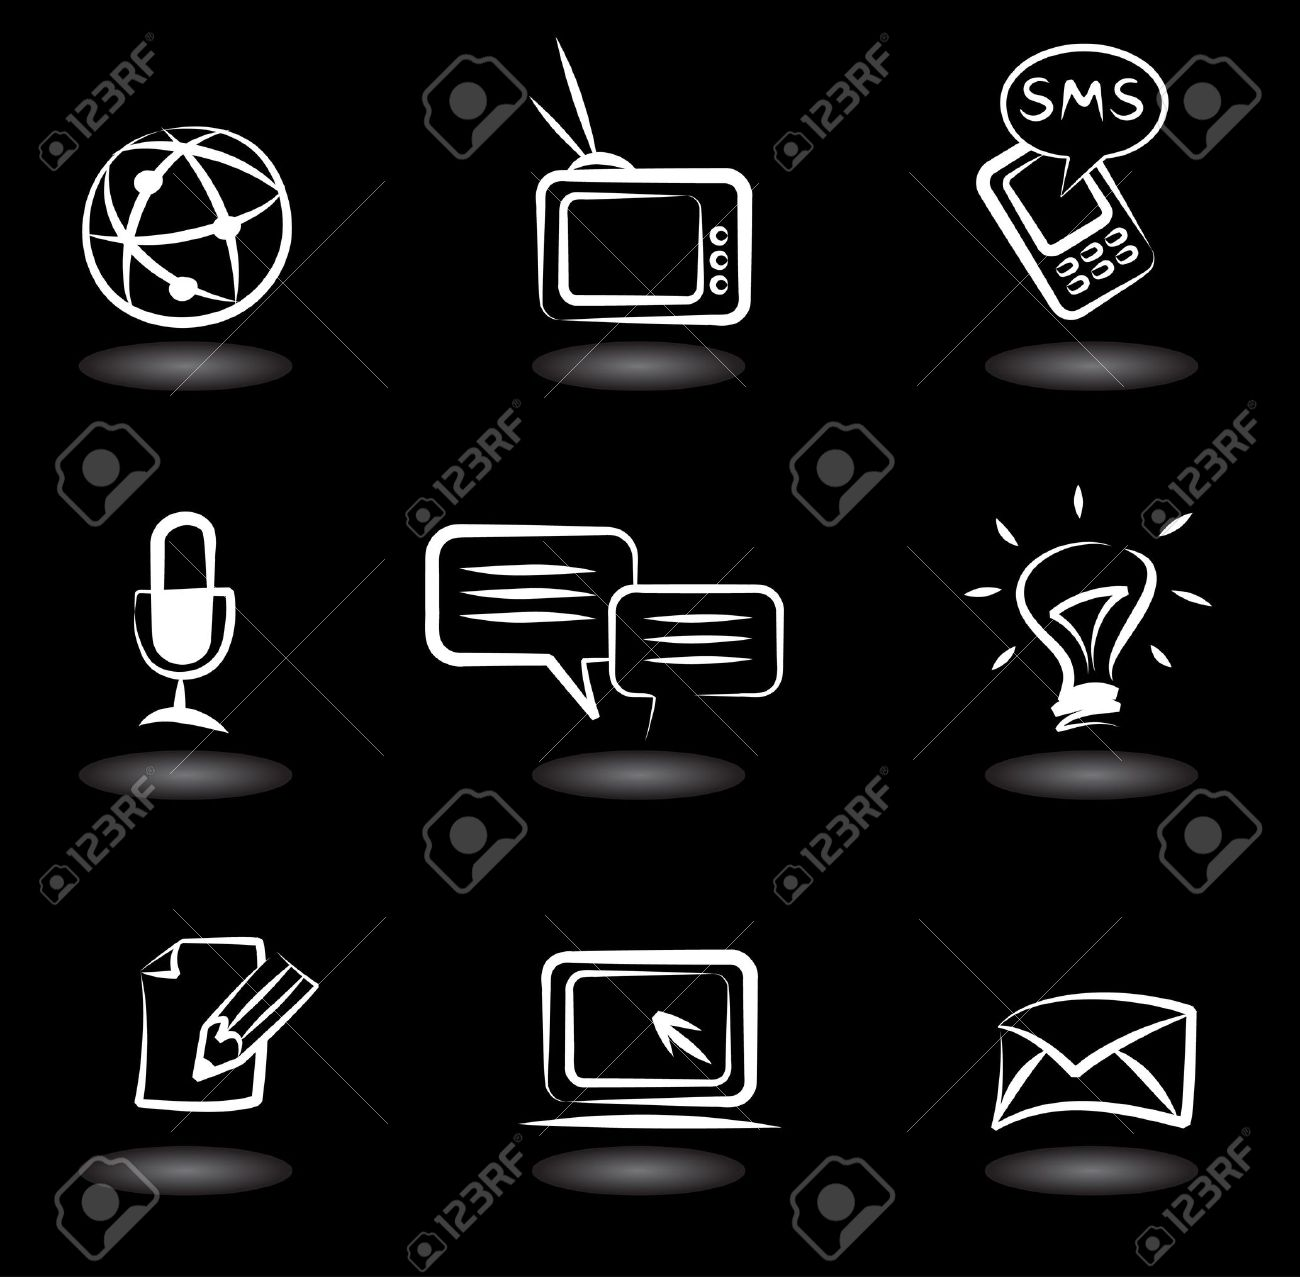 Collection Of Communication Icons On Black Background Royalty Free